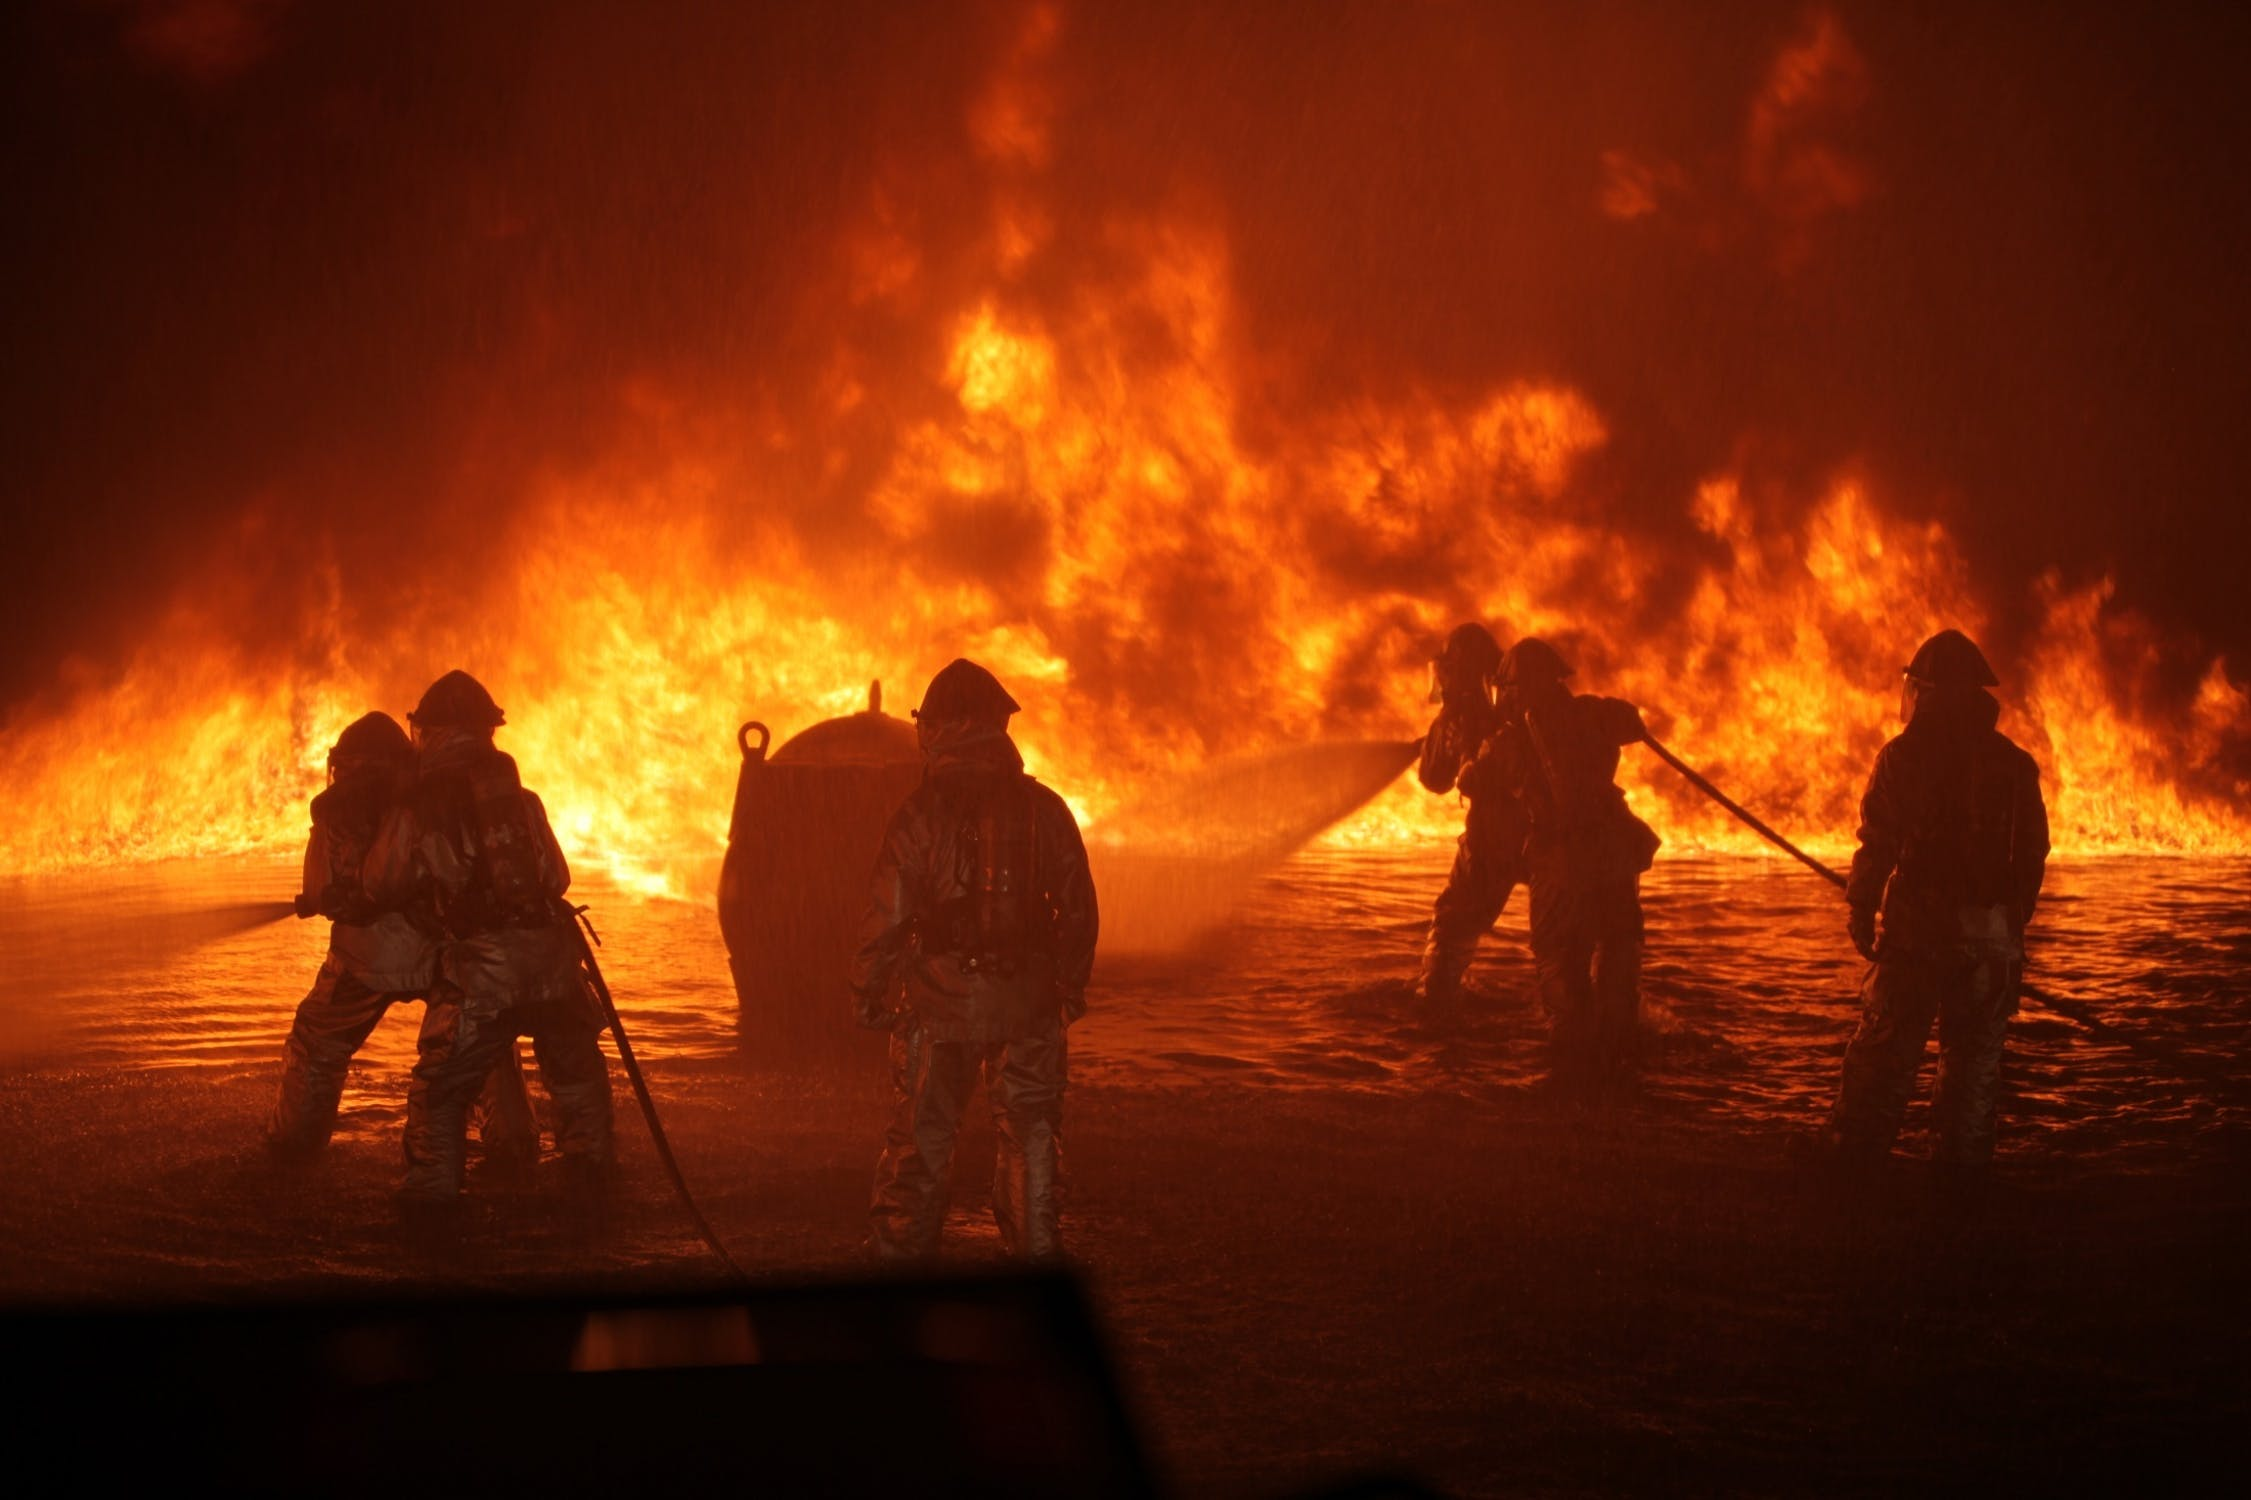 Wildfires and firefighters